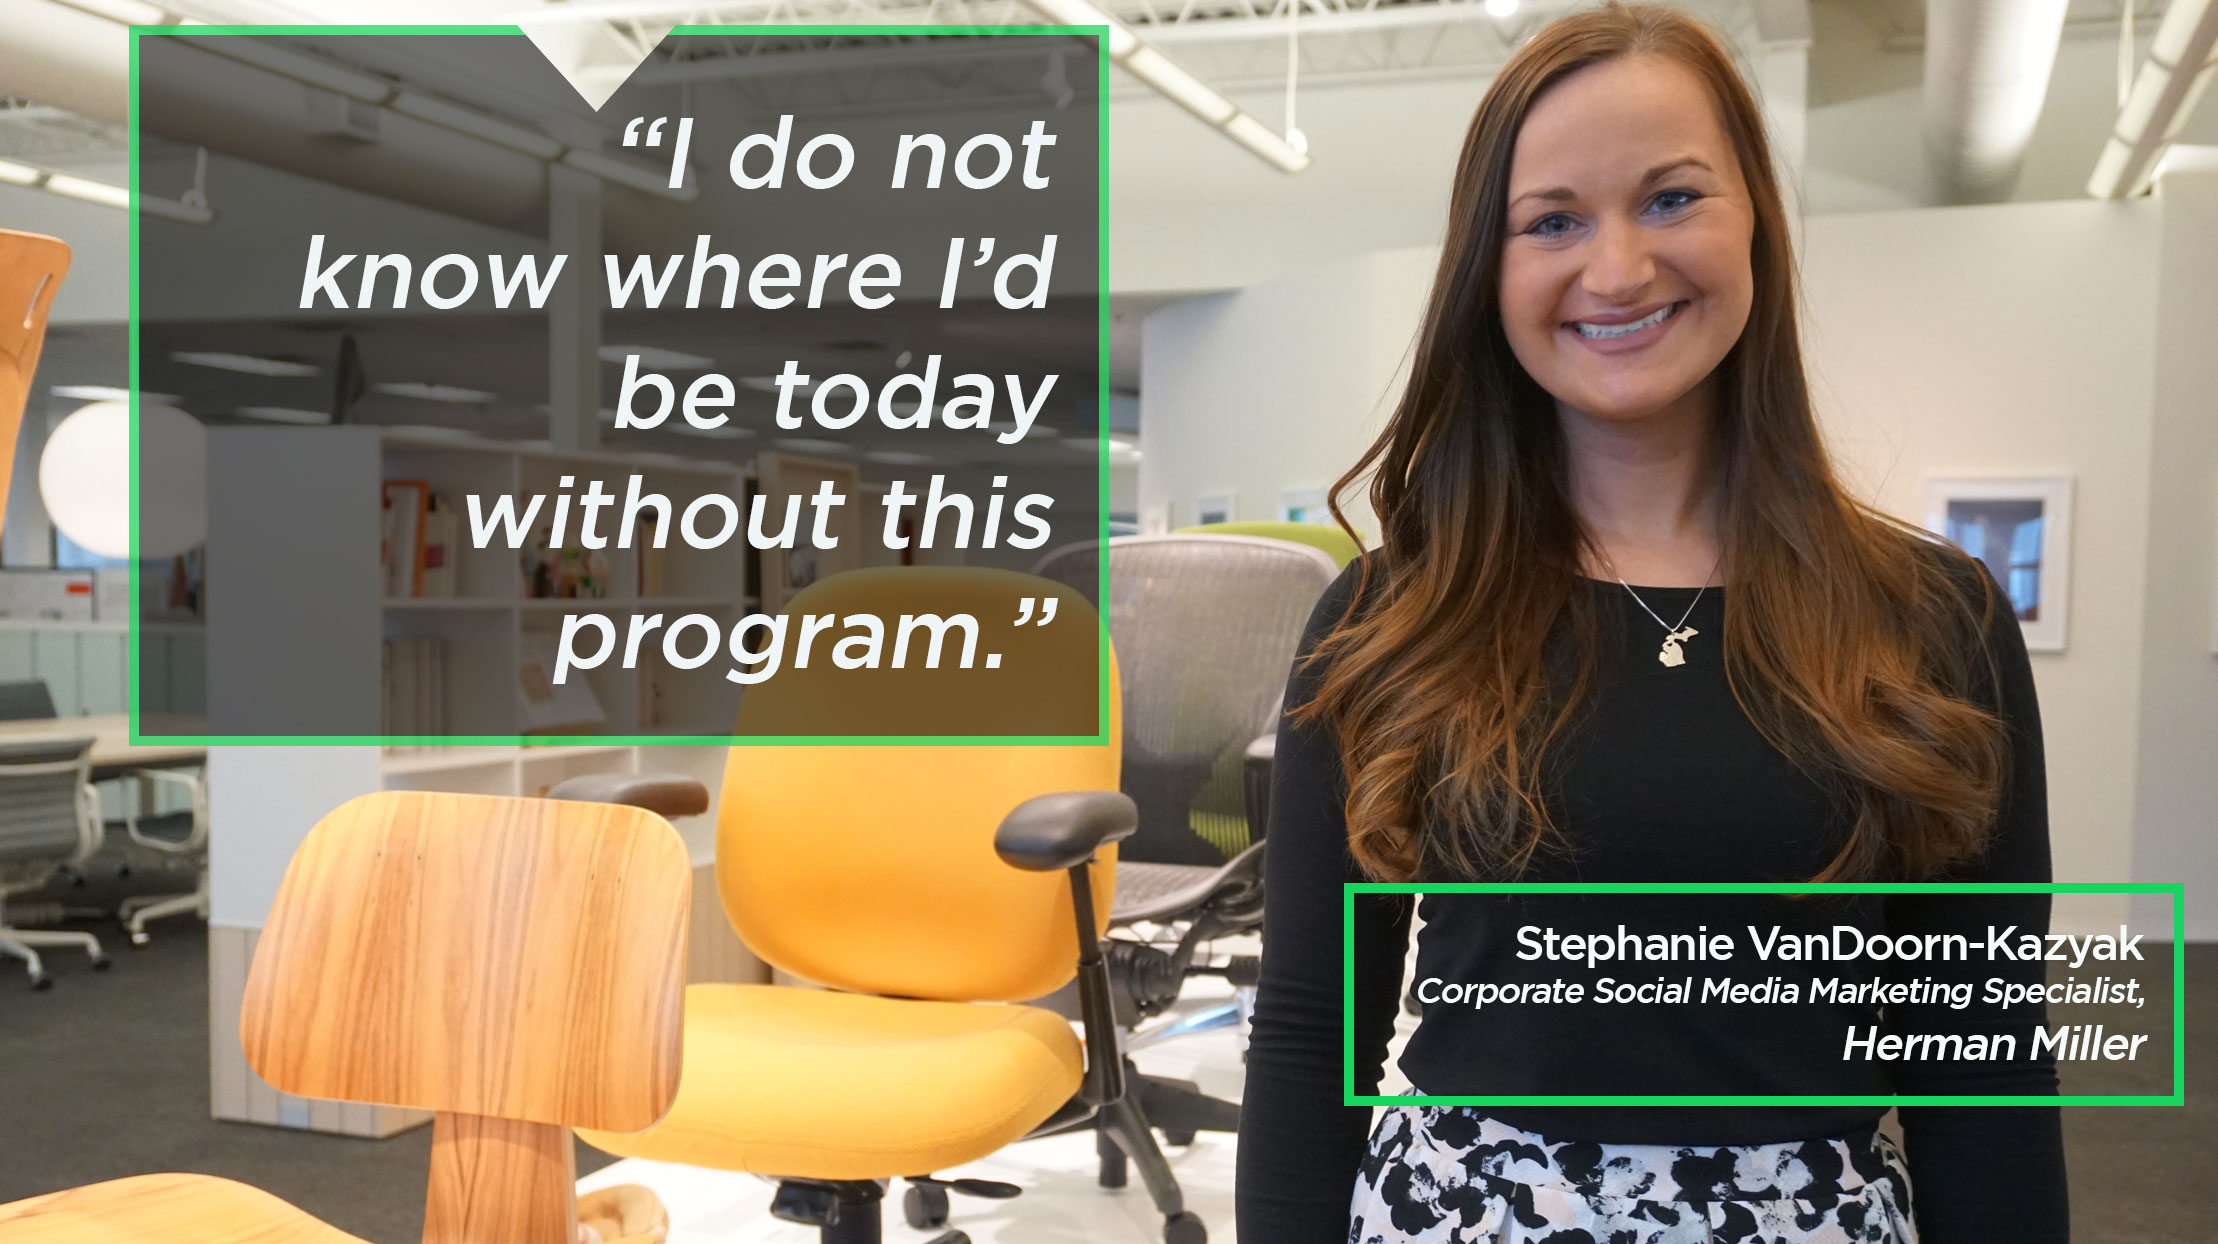 Stephanie VanDoorn-Kazyak's says she doesn't know where she'd be today without this program